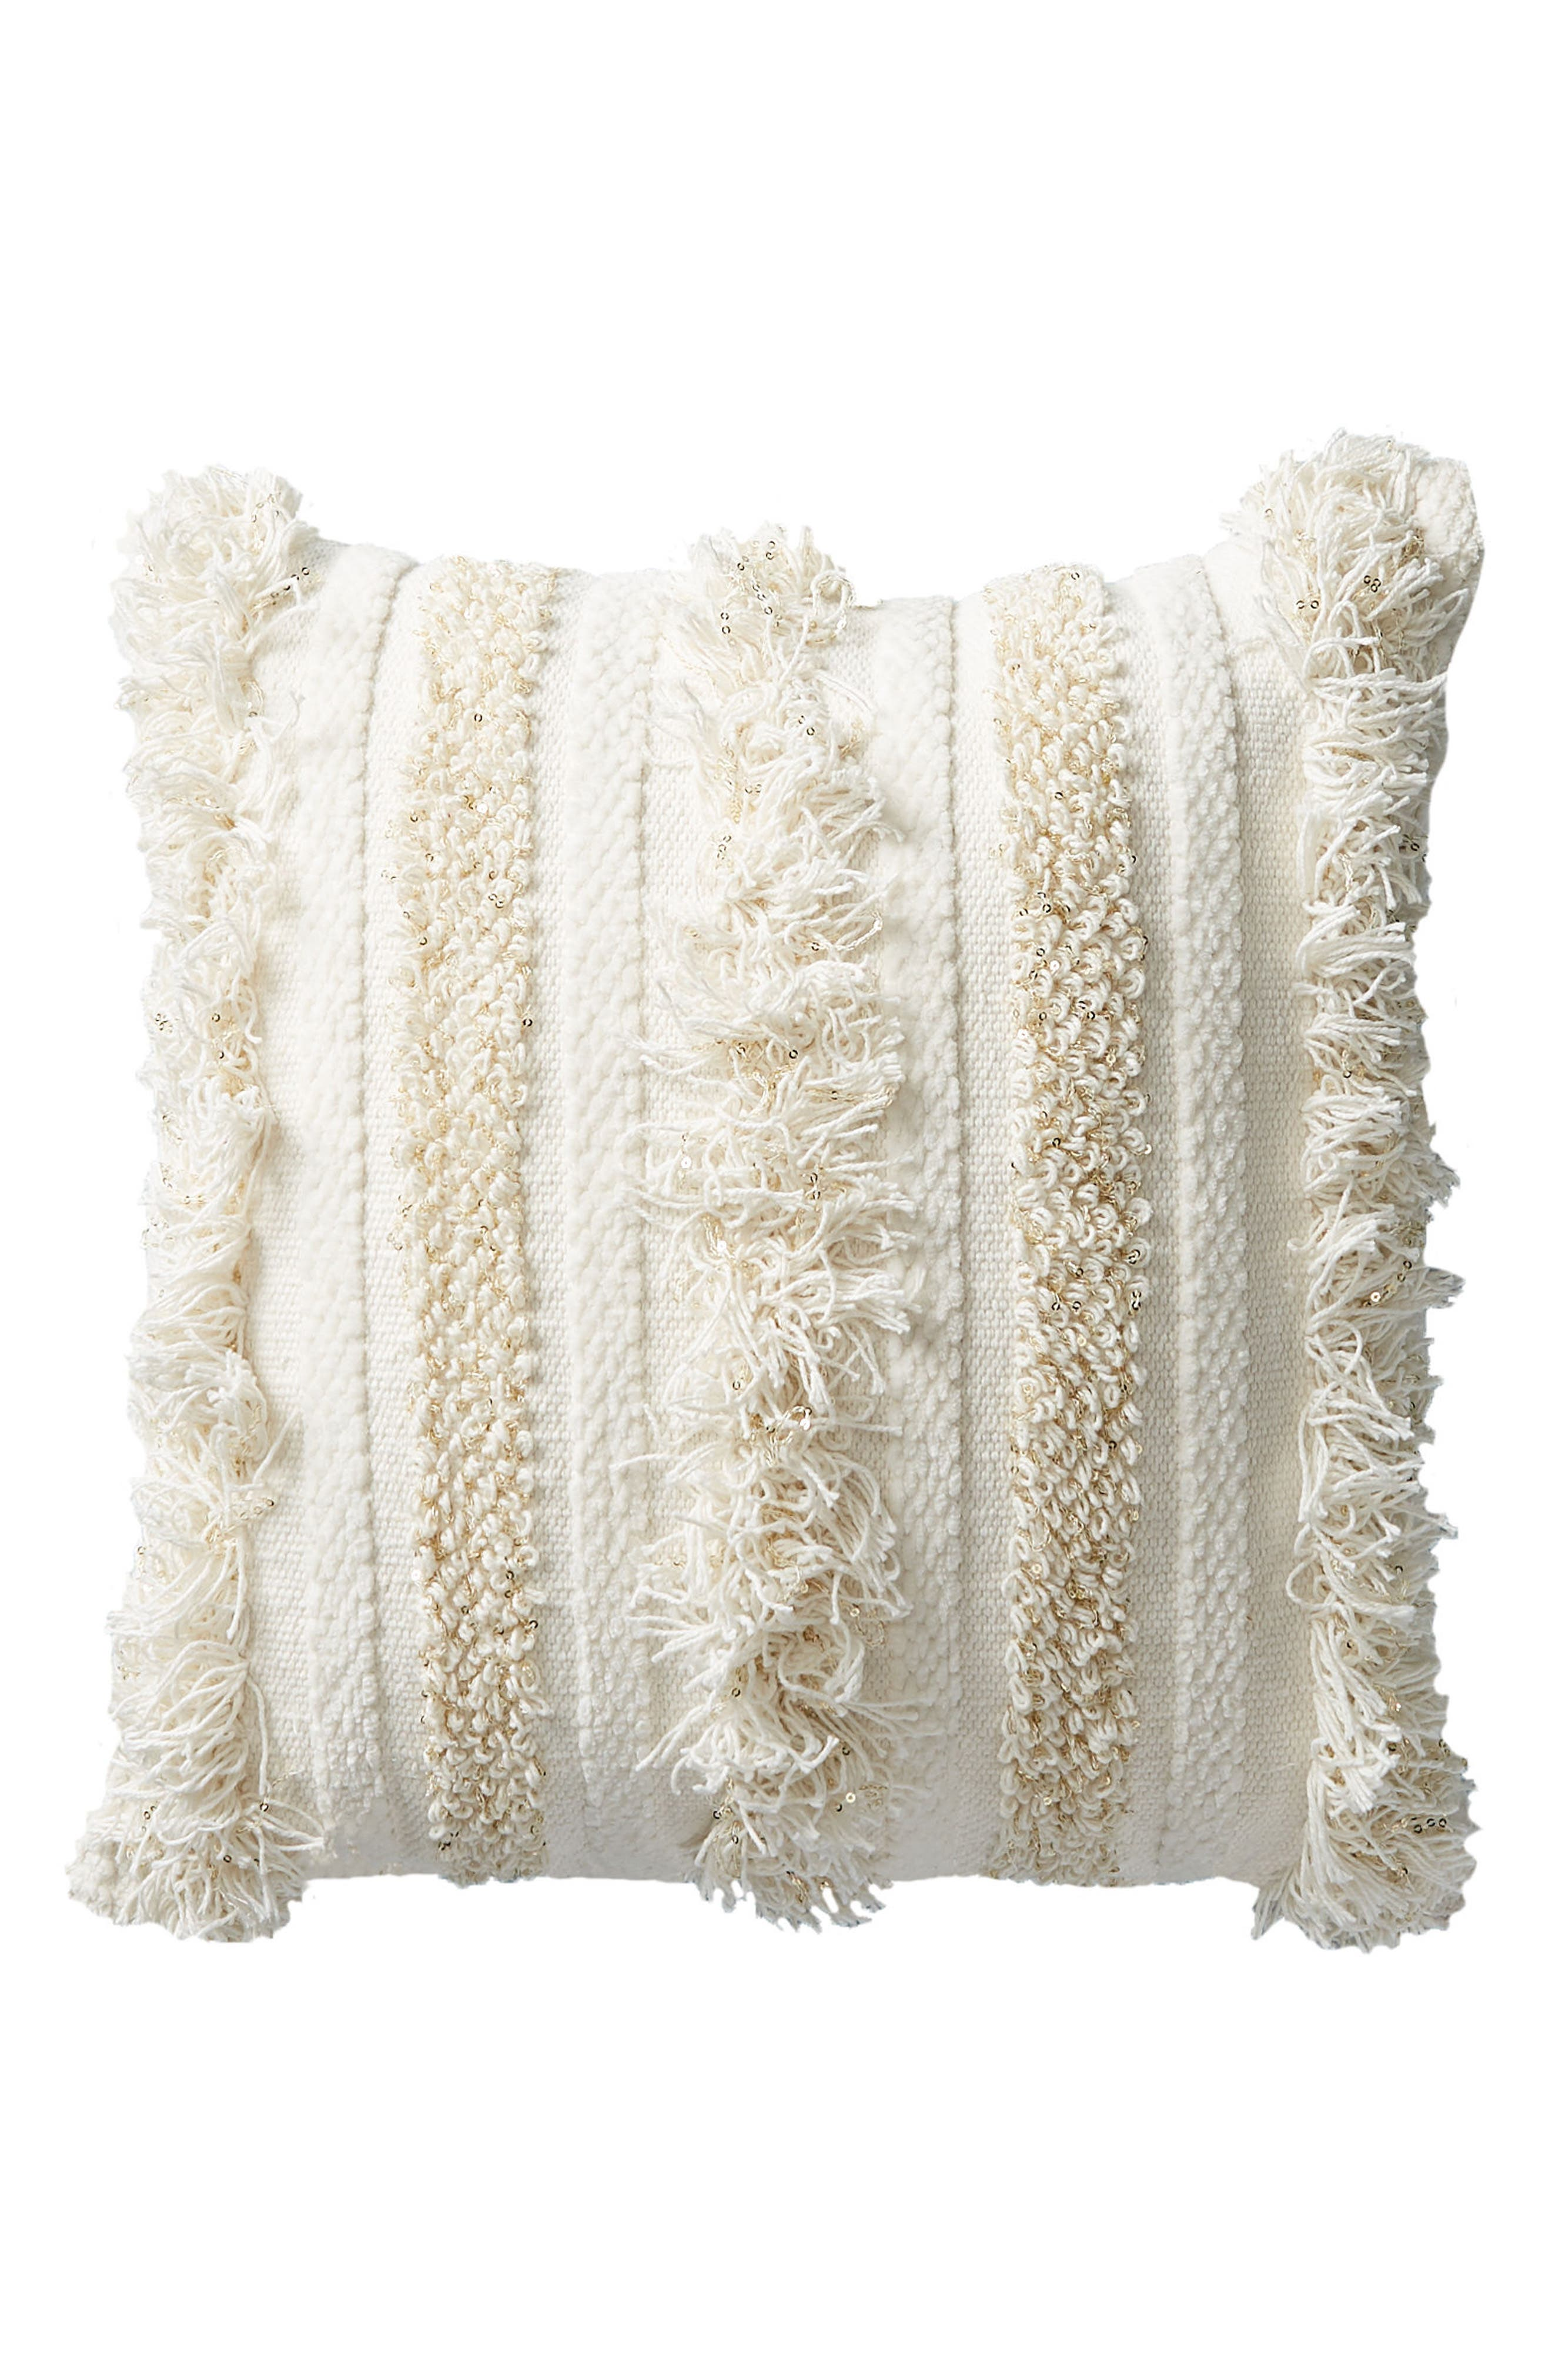 Indira Accent Pillow,                             Alternate thumbnail 8, color,                             White/ Ivory